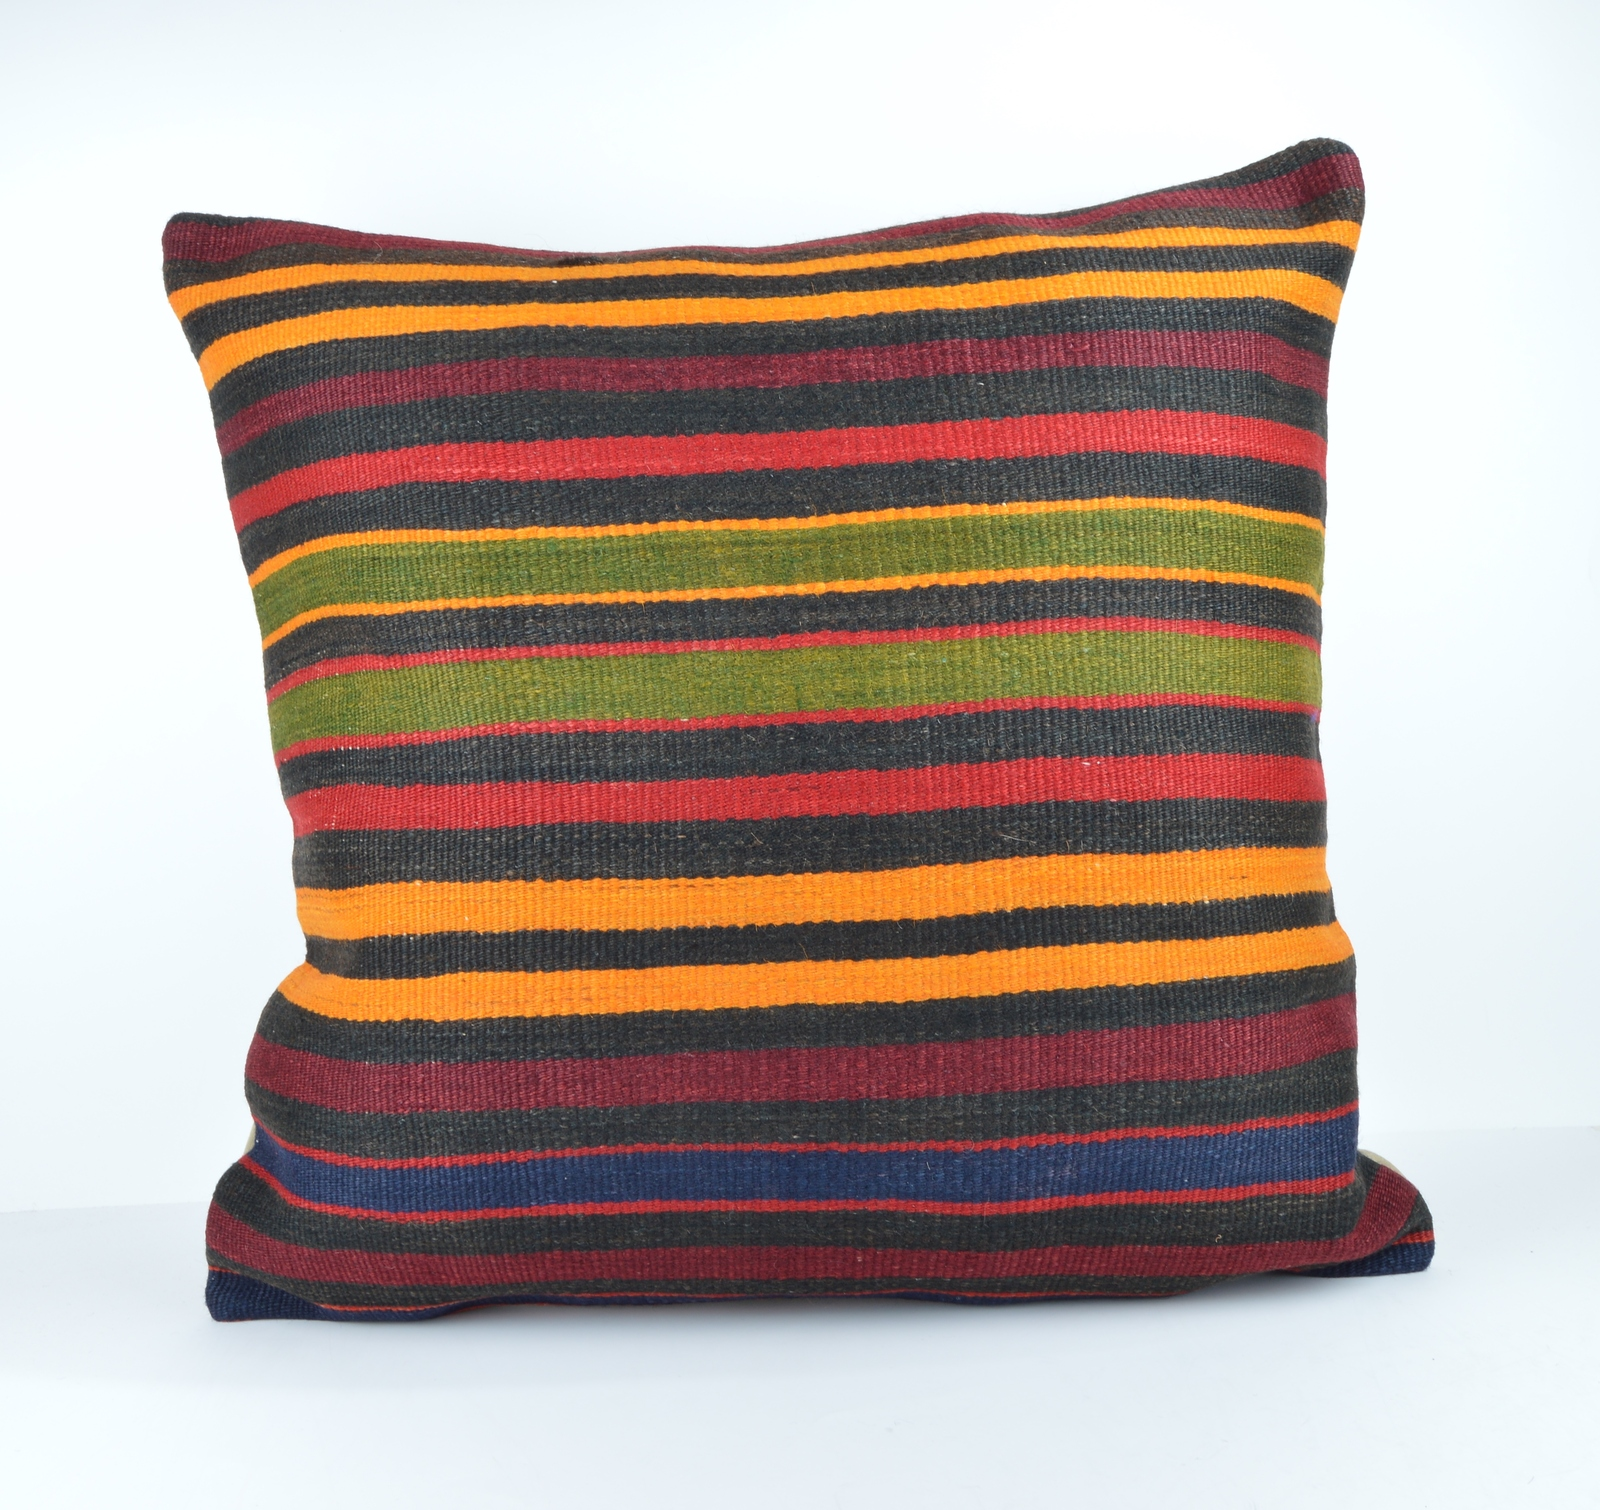 Large Throw Pillow Cases : 24x24 large kilim pillow big pillow decorative pillow cover large cushion case - Pillows